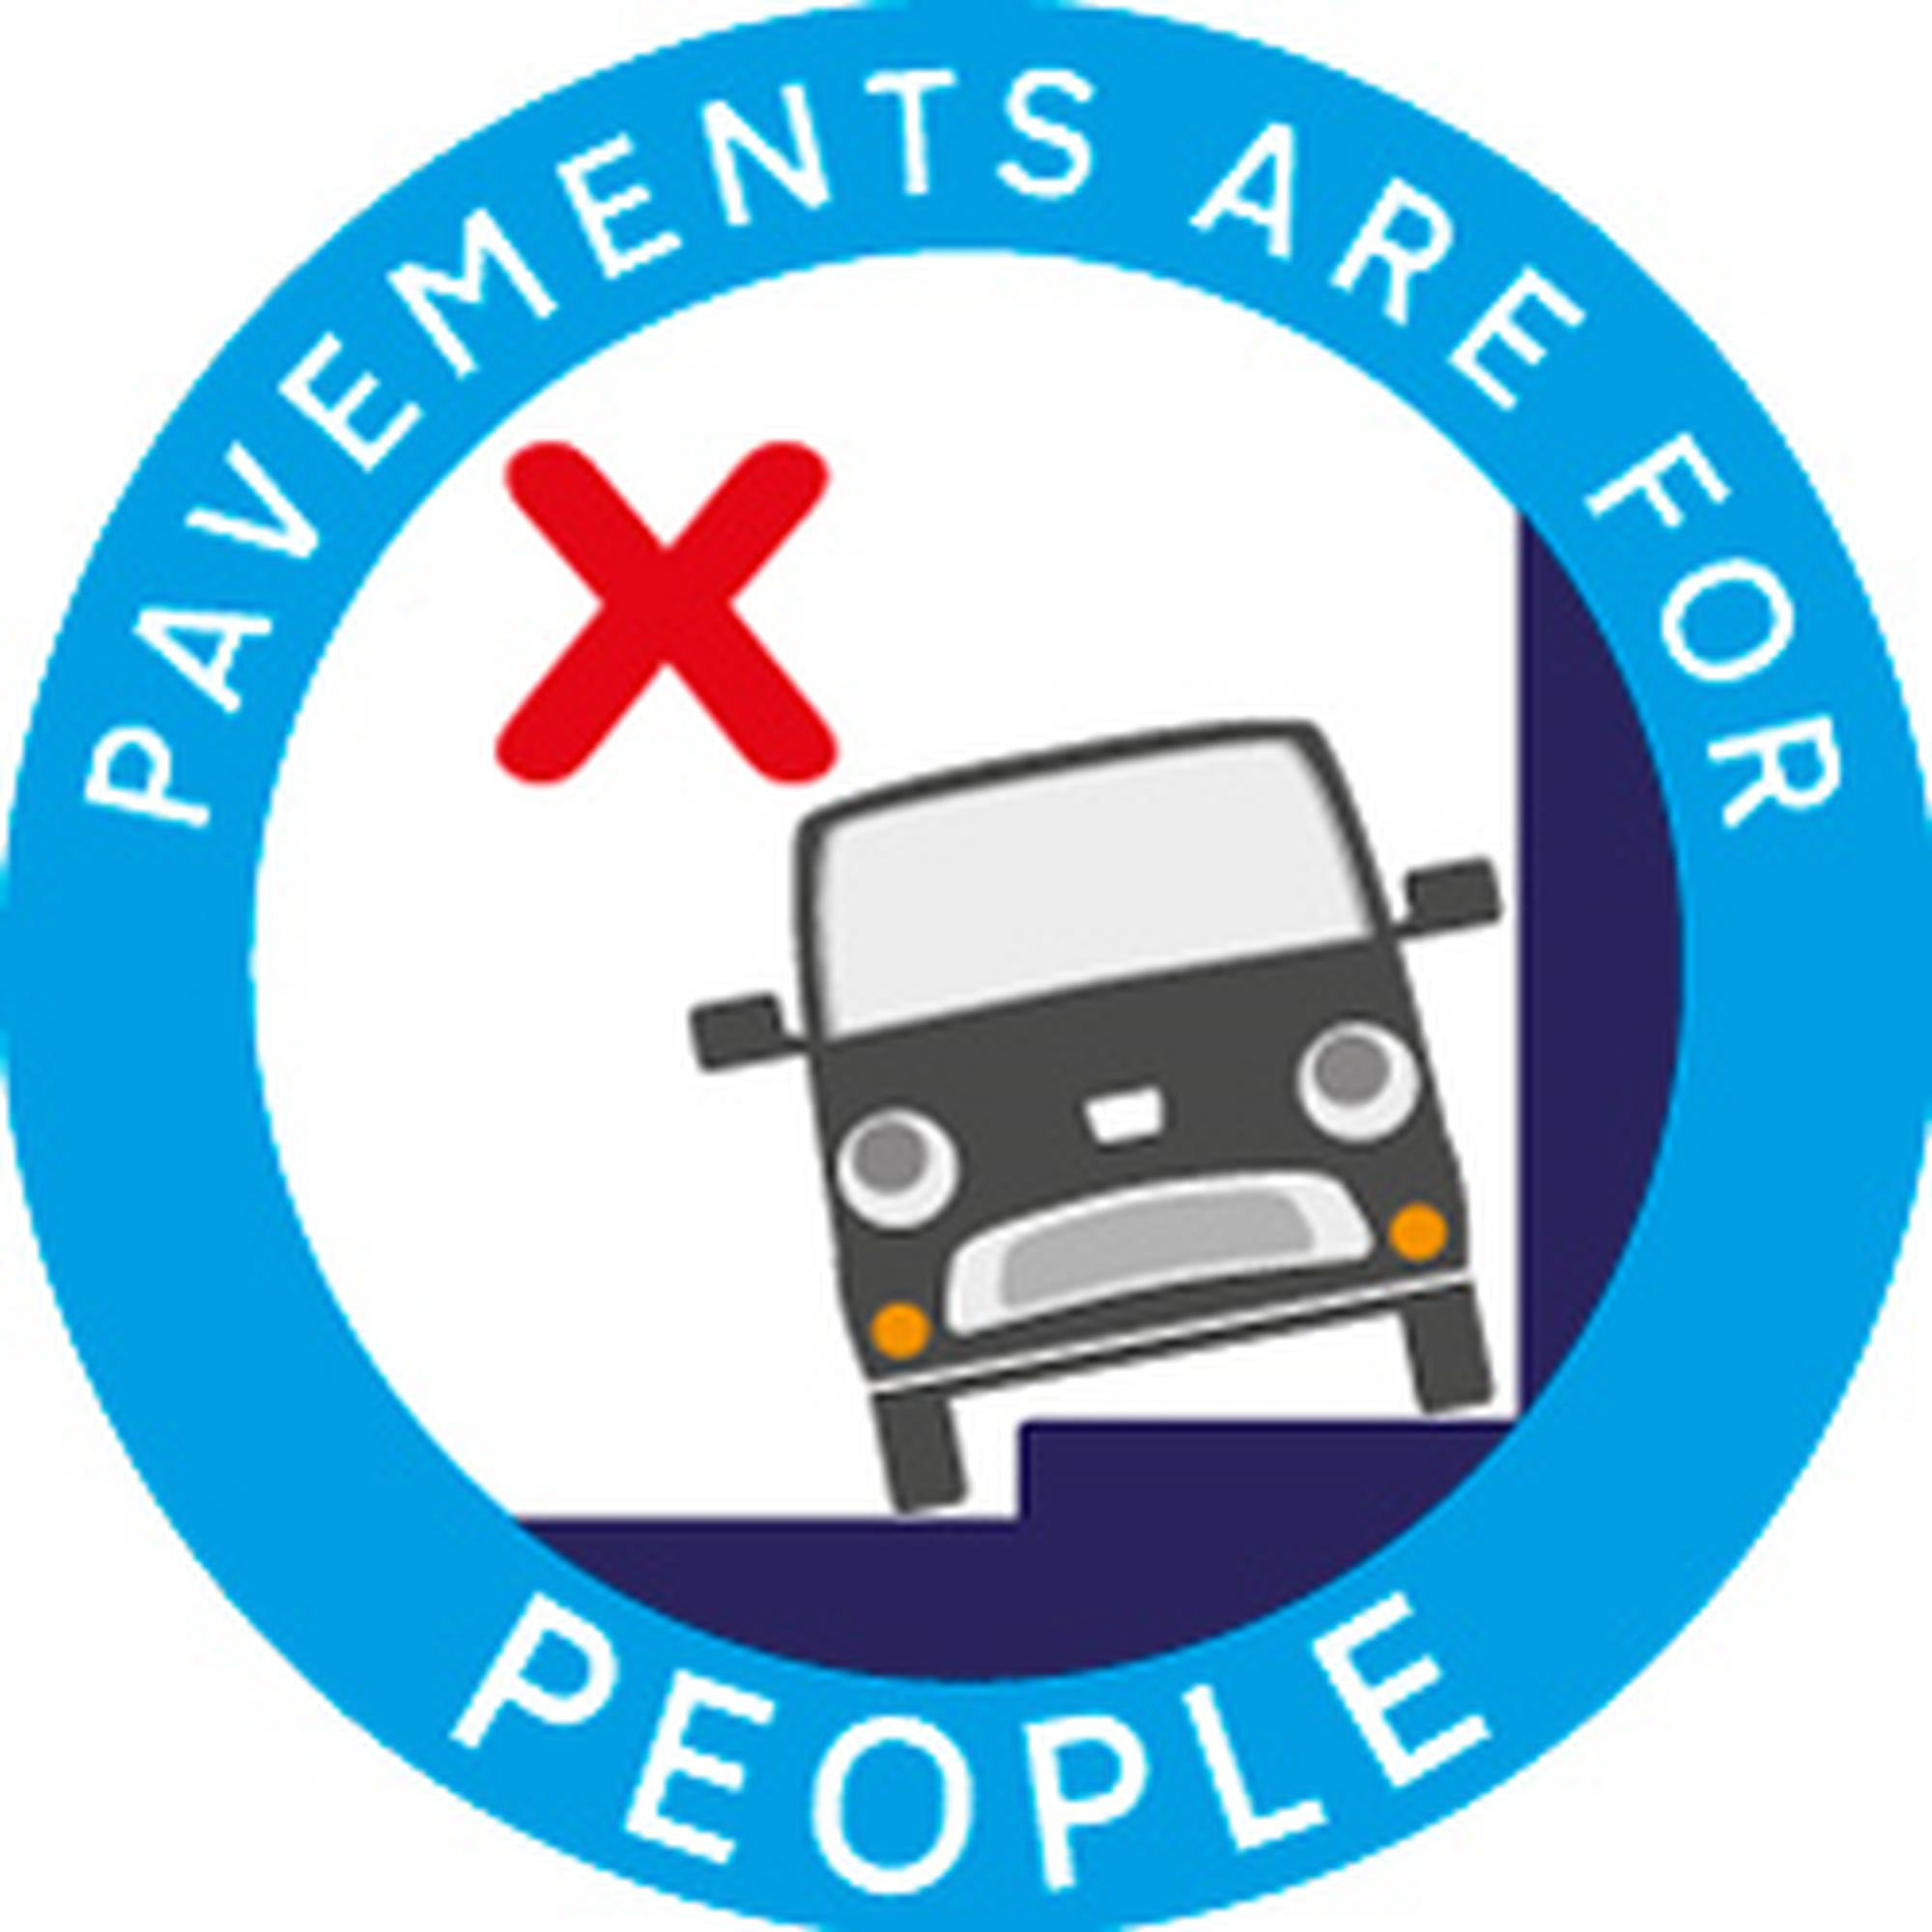 Devon County Council has been promoting awareness of the footway parking issue through a leafleting campaign using a 'Pavements are for people' logo